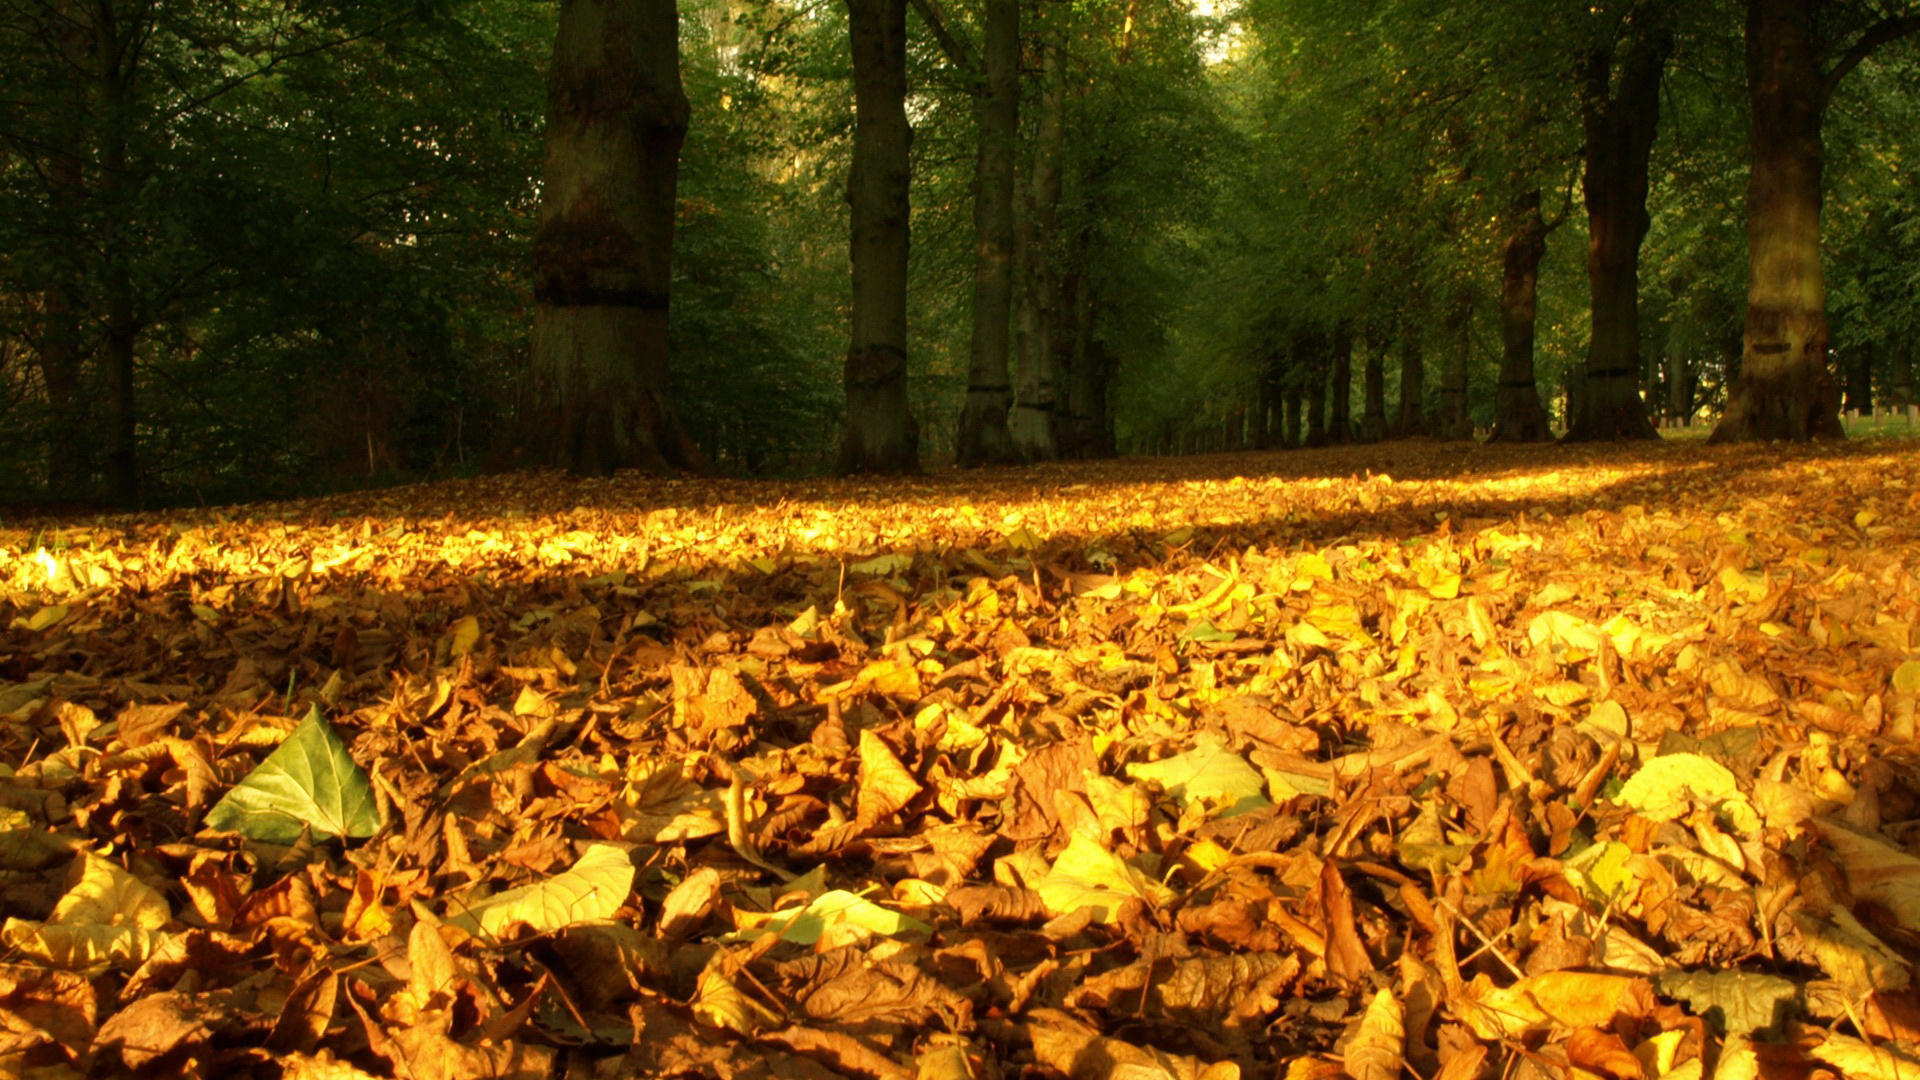 click to free download the wallpaper--Free Download Natural Scenery Picture - A Field of Fallen Leaves, Golden in Look, the Sun's Effect 1920X1080 free wallpaper download